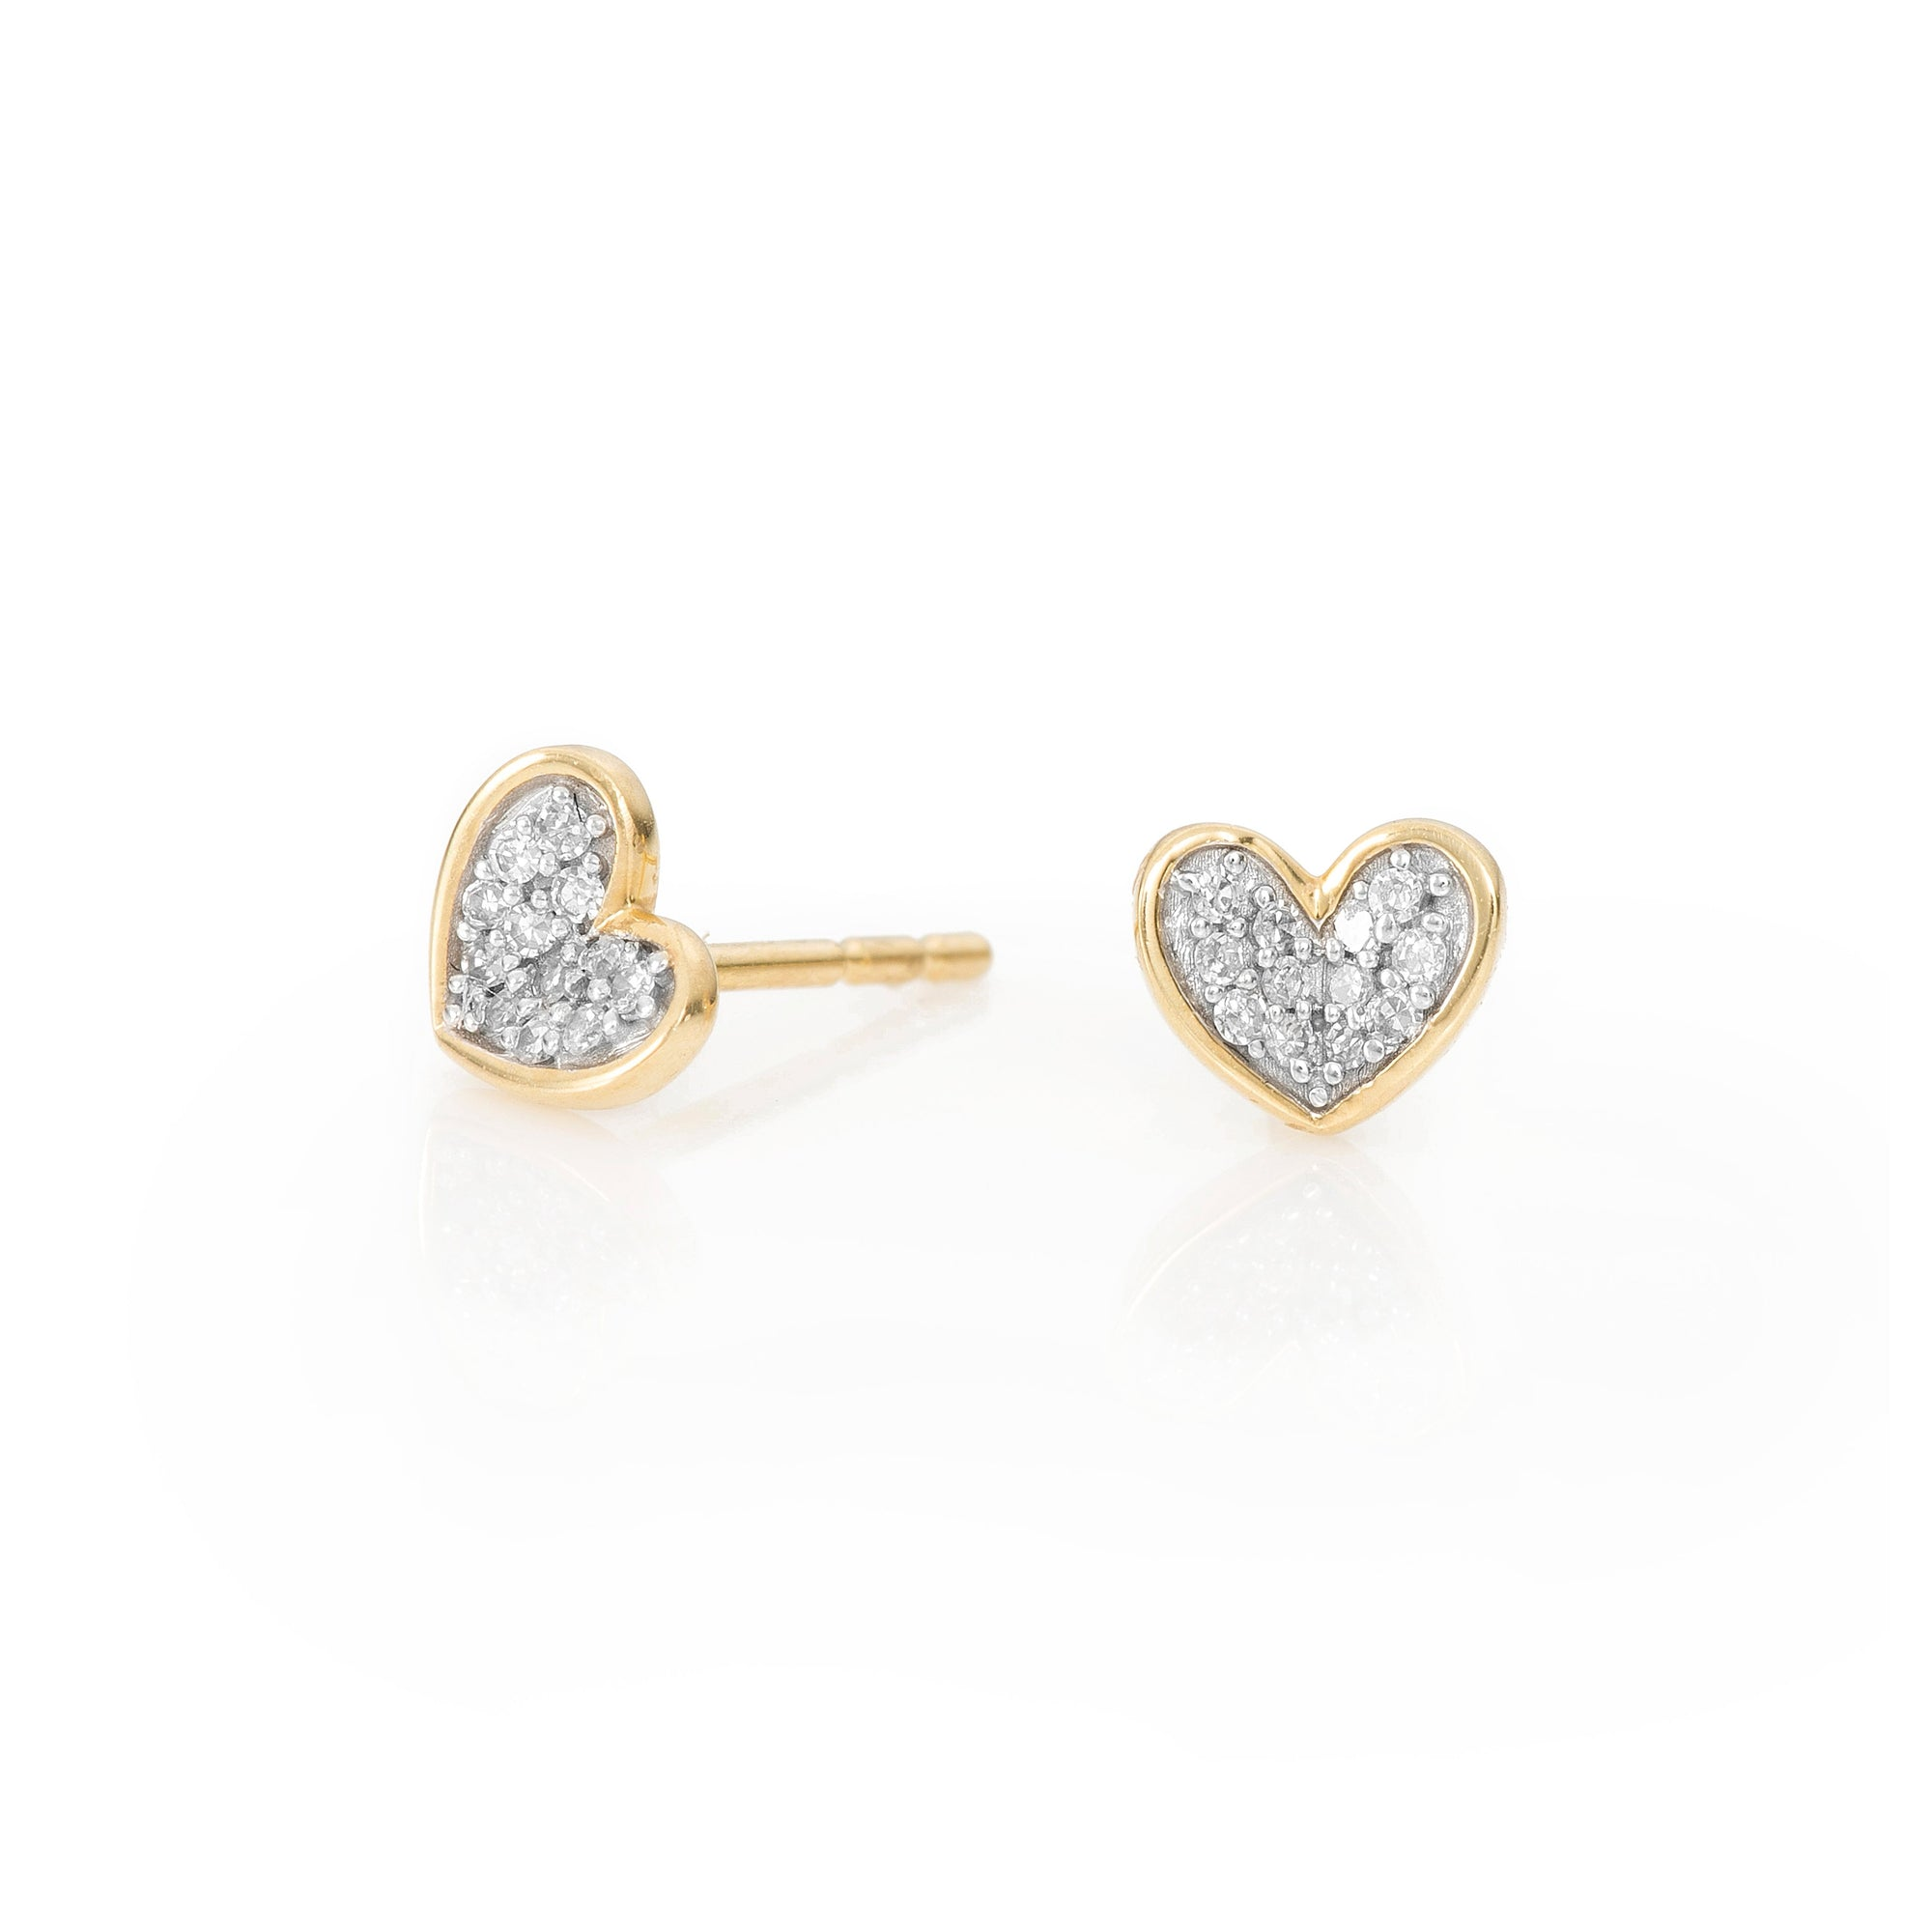 Adina Reyter Super Tiny 14k Gold Pave Folded Heart Posts